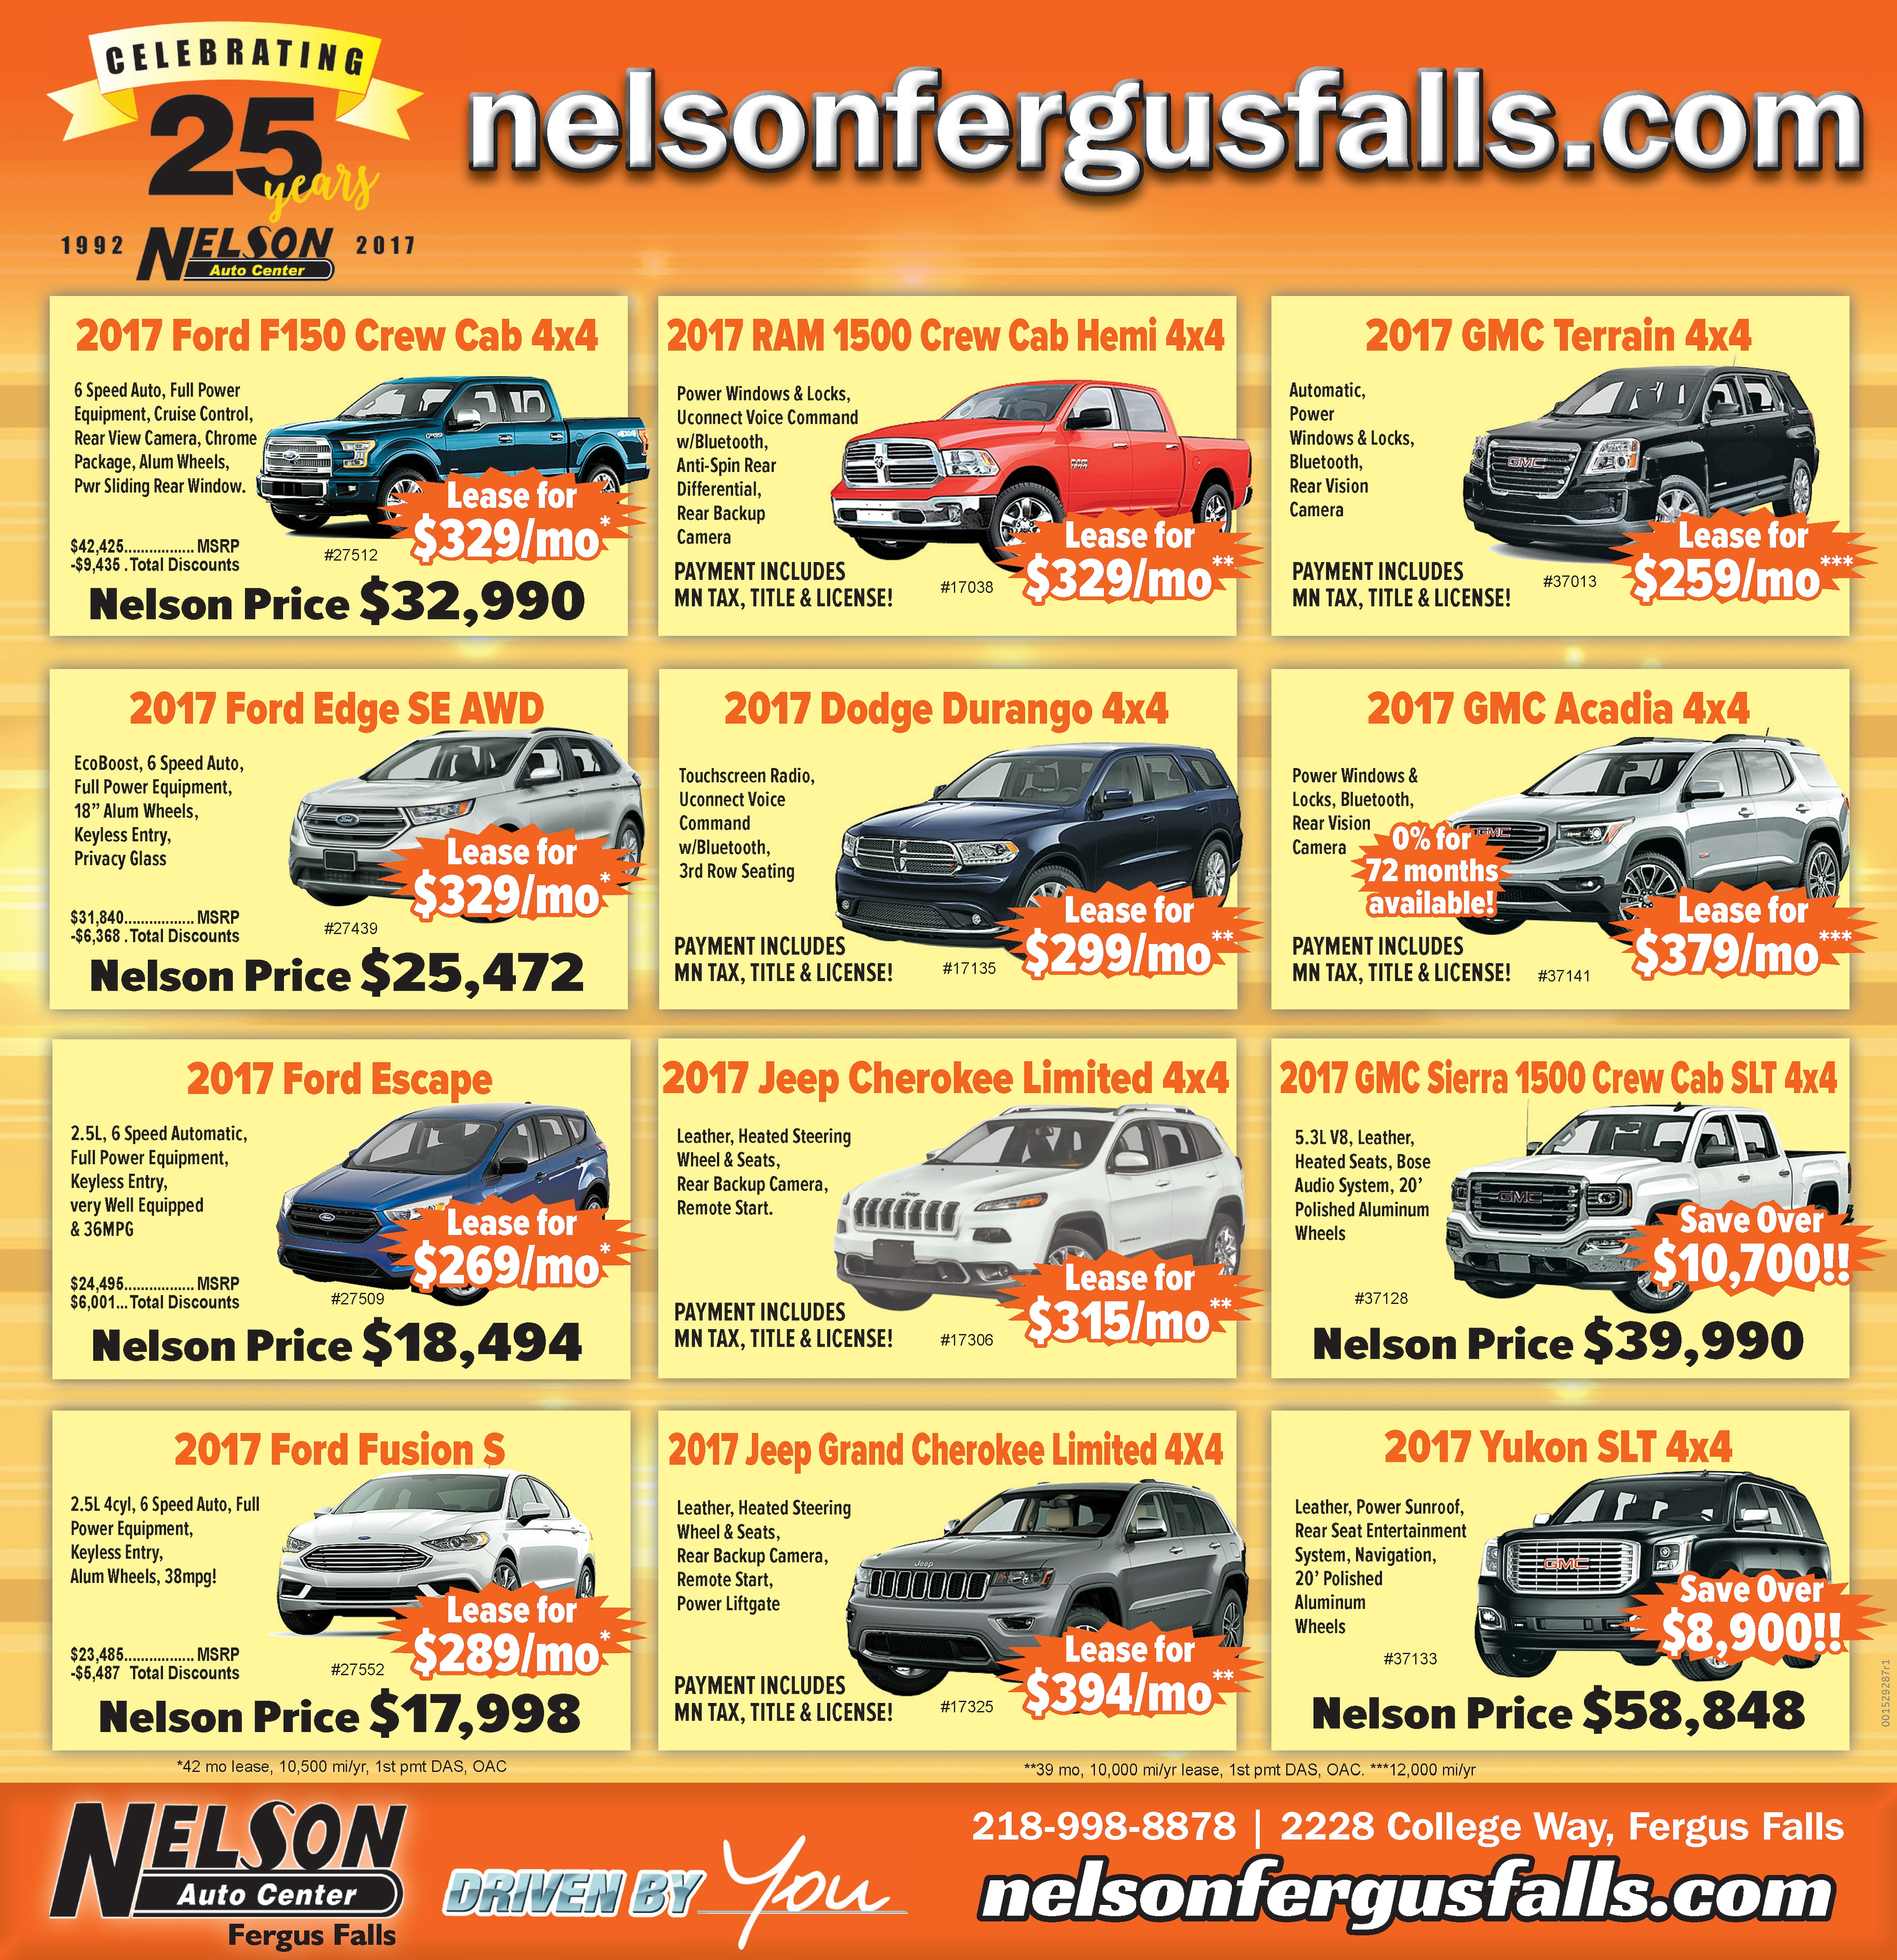 Nelson Auto Center | New Chrysler, Dodge, Jeep, Ford, Lincoln, GMC